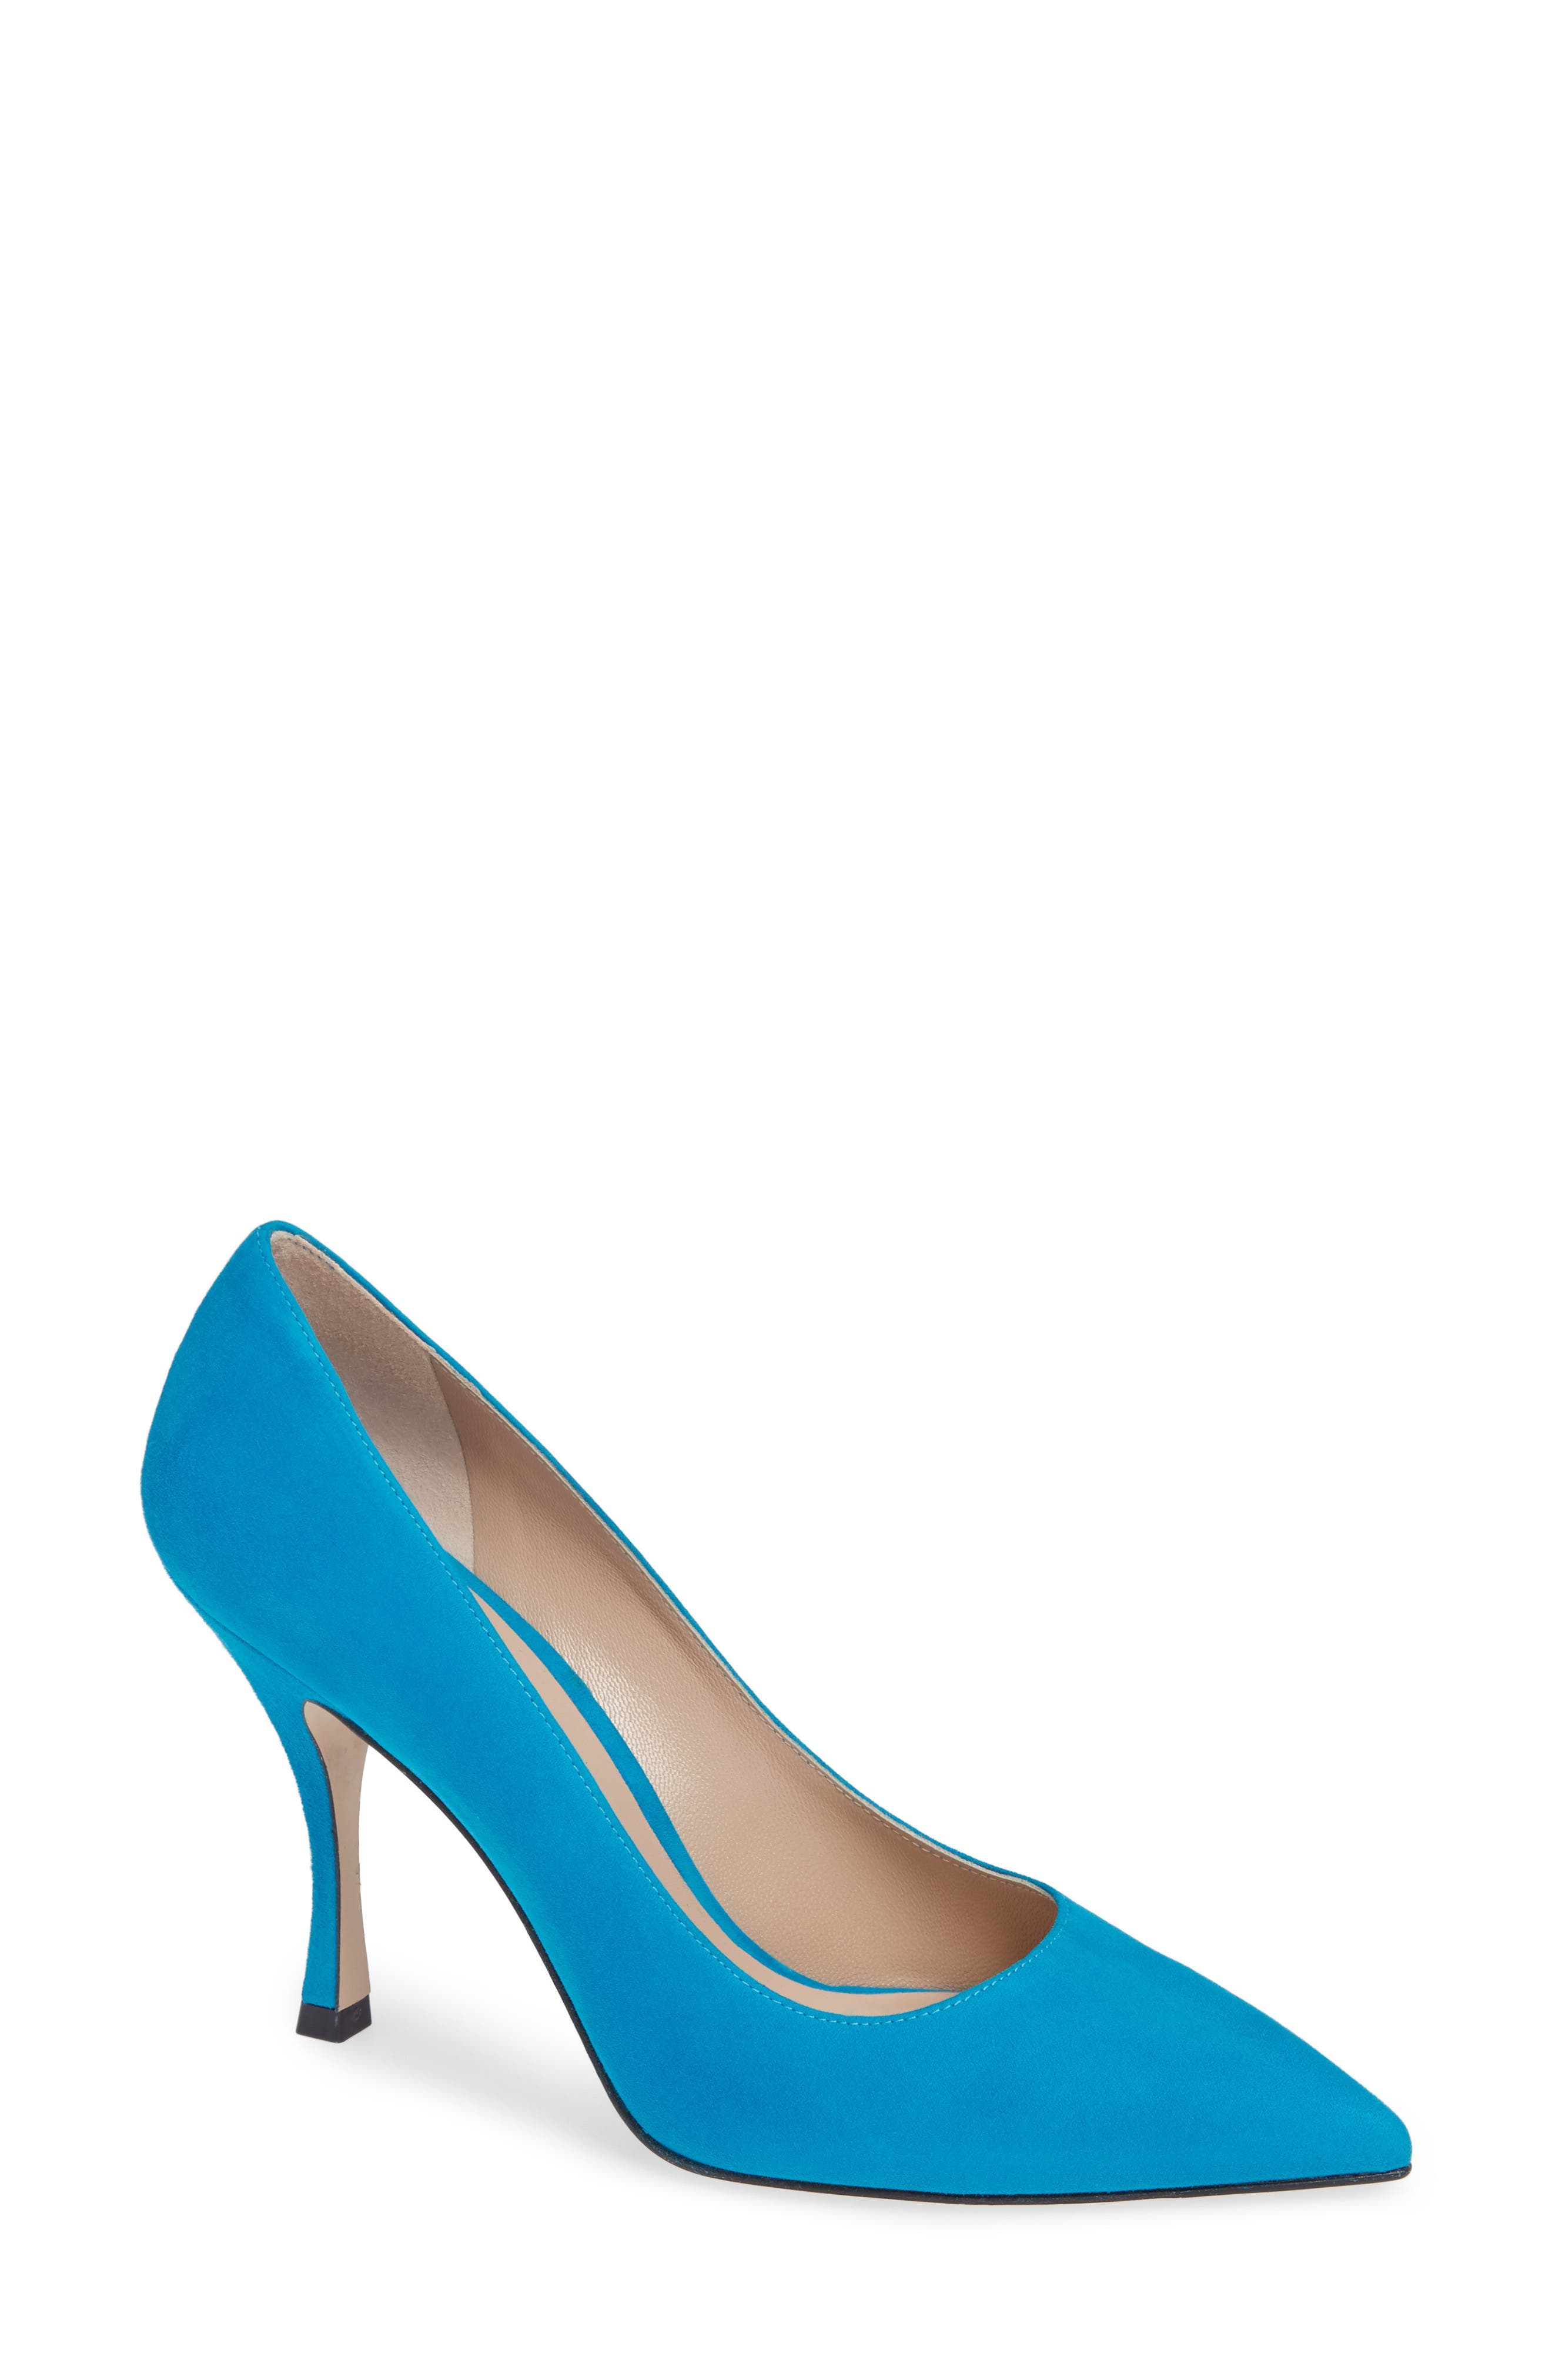 Tippi Pump,                             Main thumbnail 1, color,                             OCEANIC SUEDE